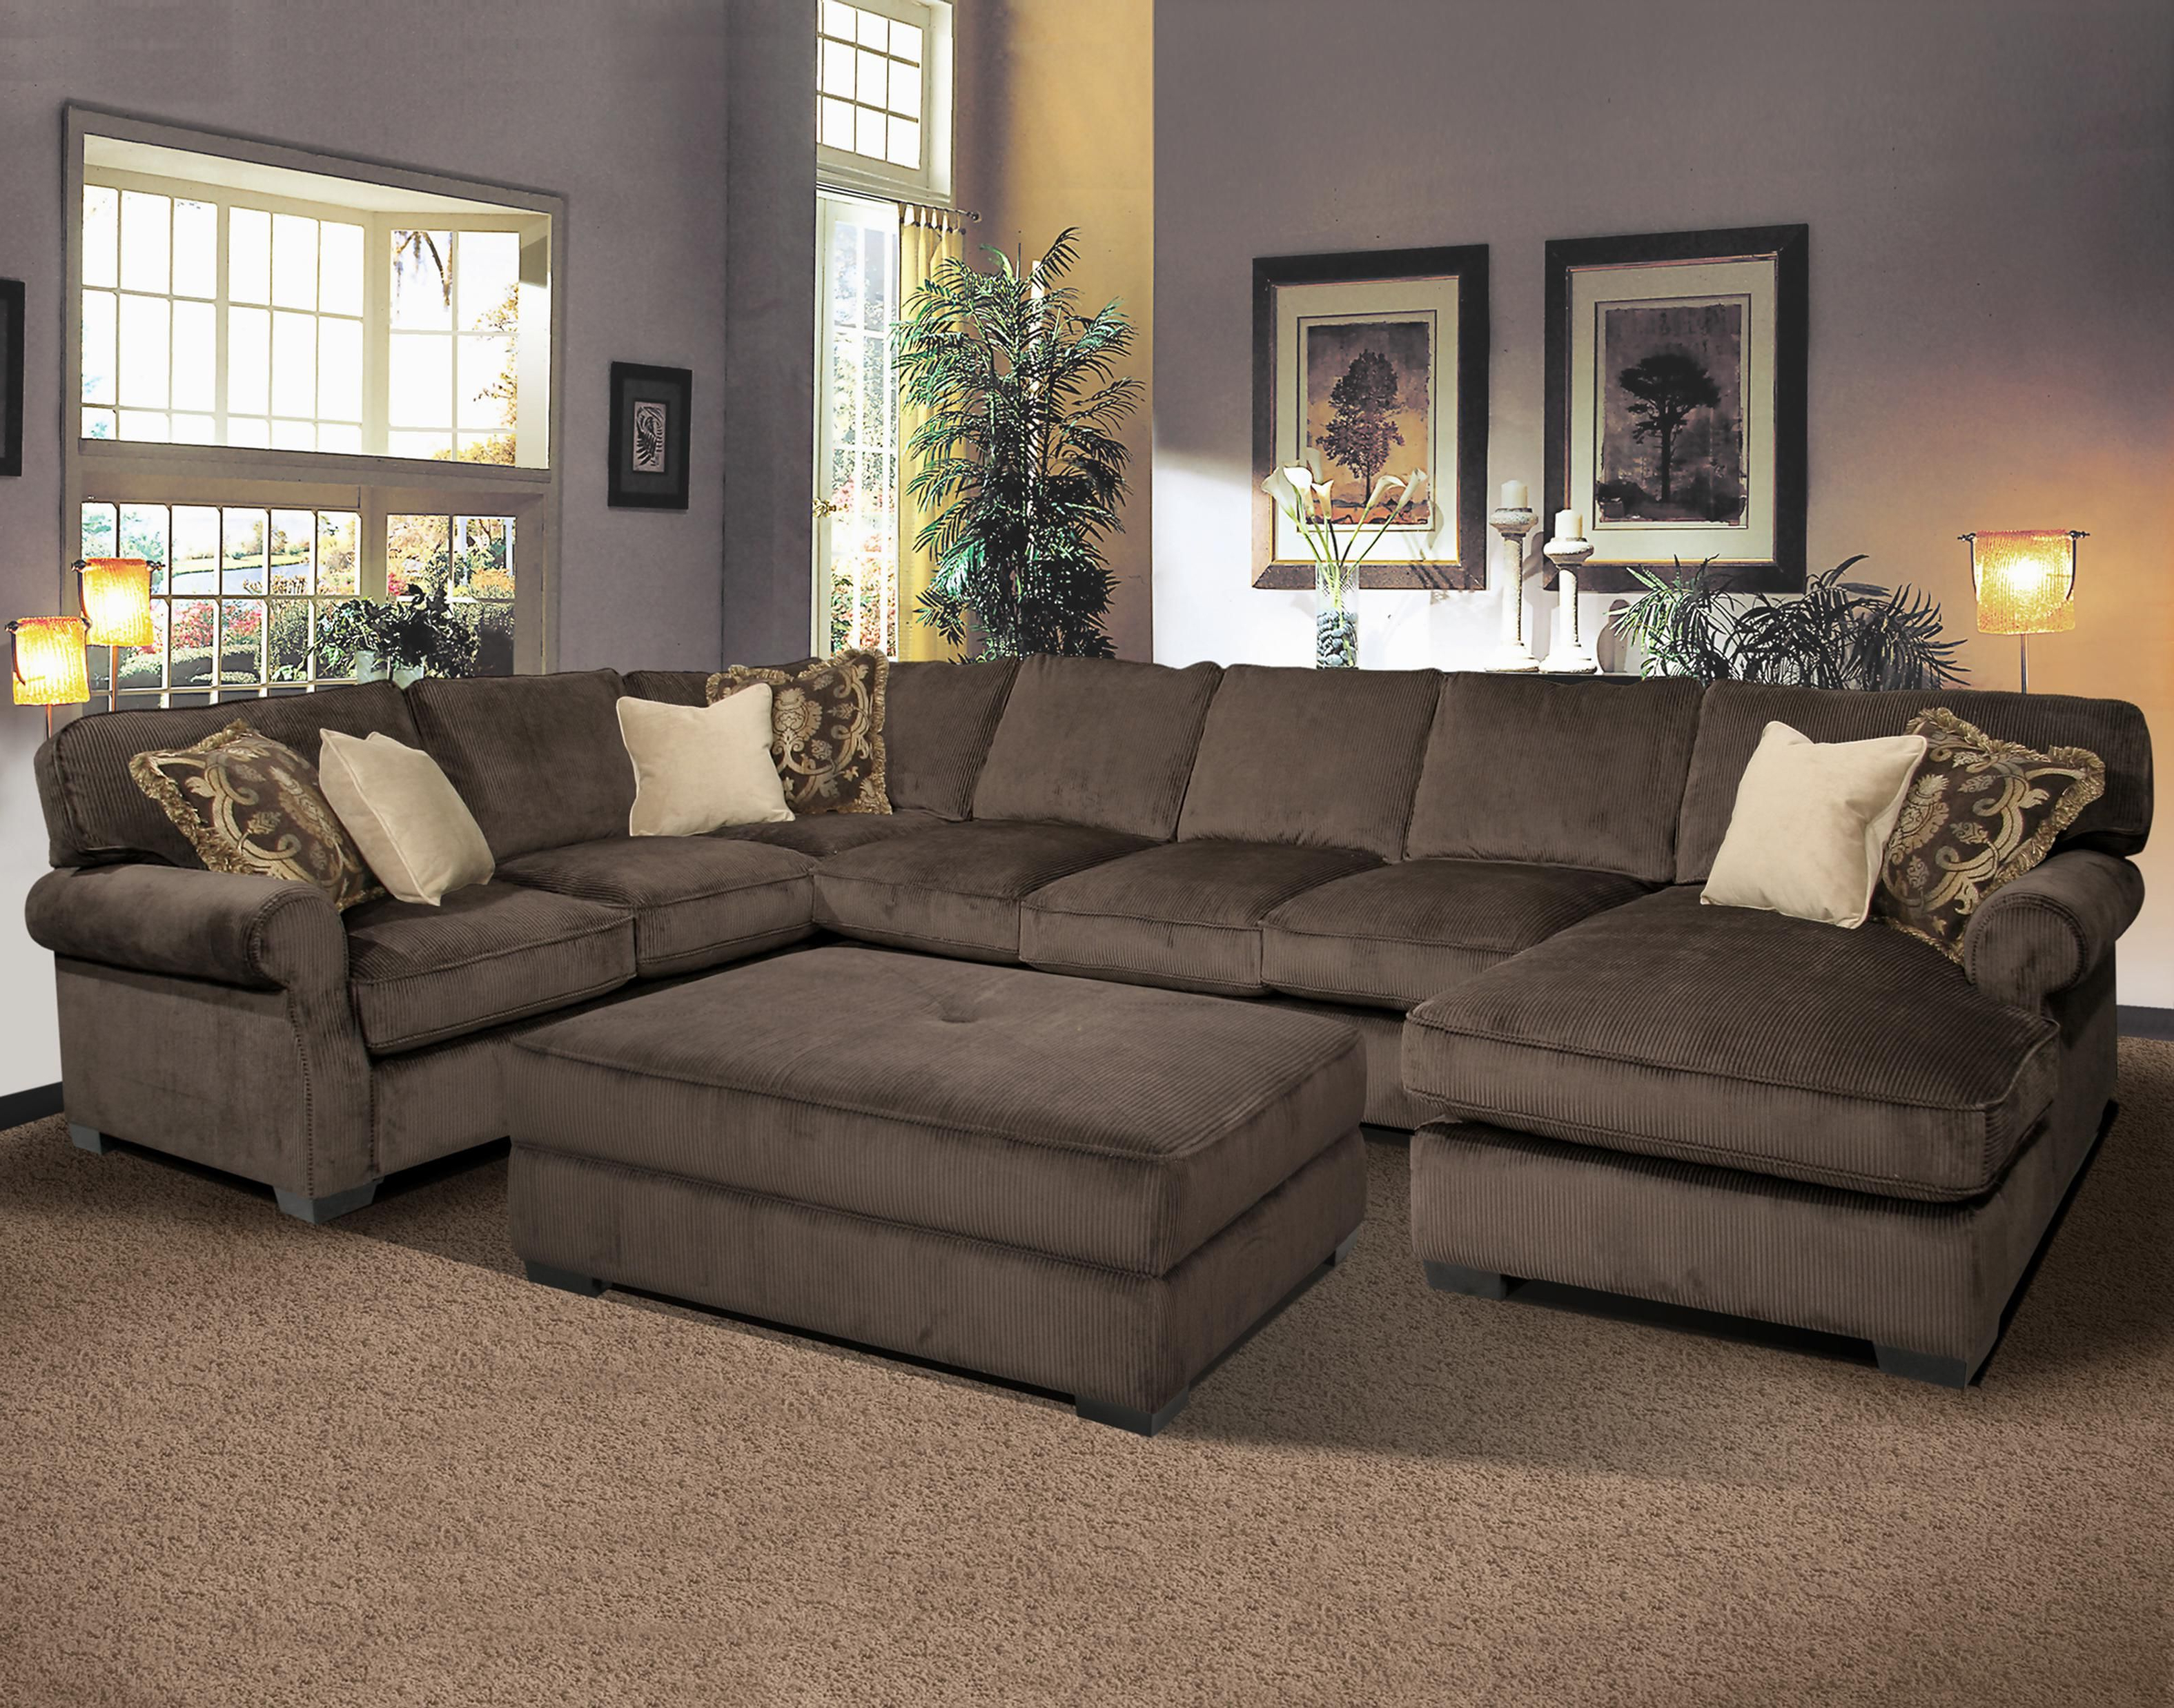 Sofas With Ottomans – Get Home Inteiror & House Design Inspiration • Throughout Famous Taren Reversible Sofa/chaise Sleeper Sectionals With Storage Ottoman (View 12 of 20)